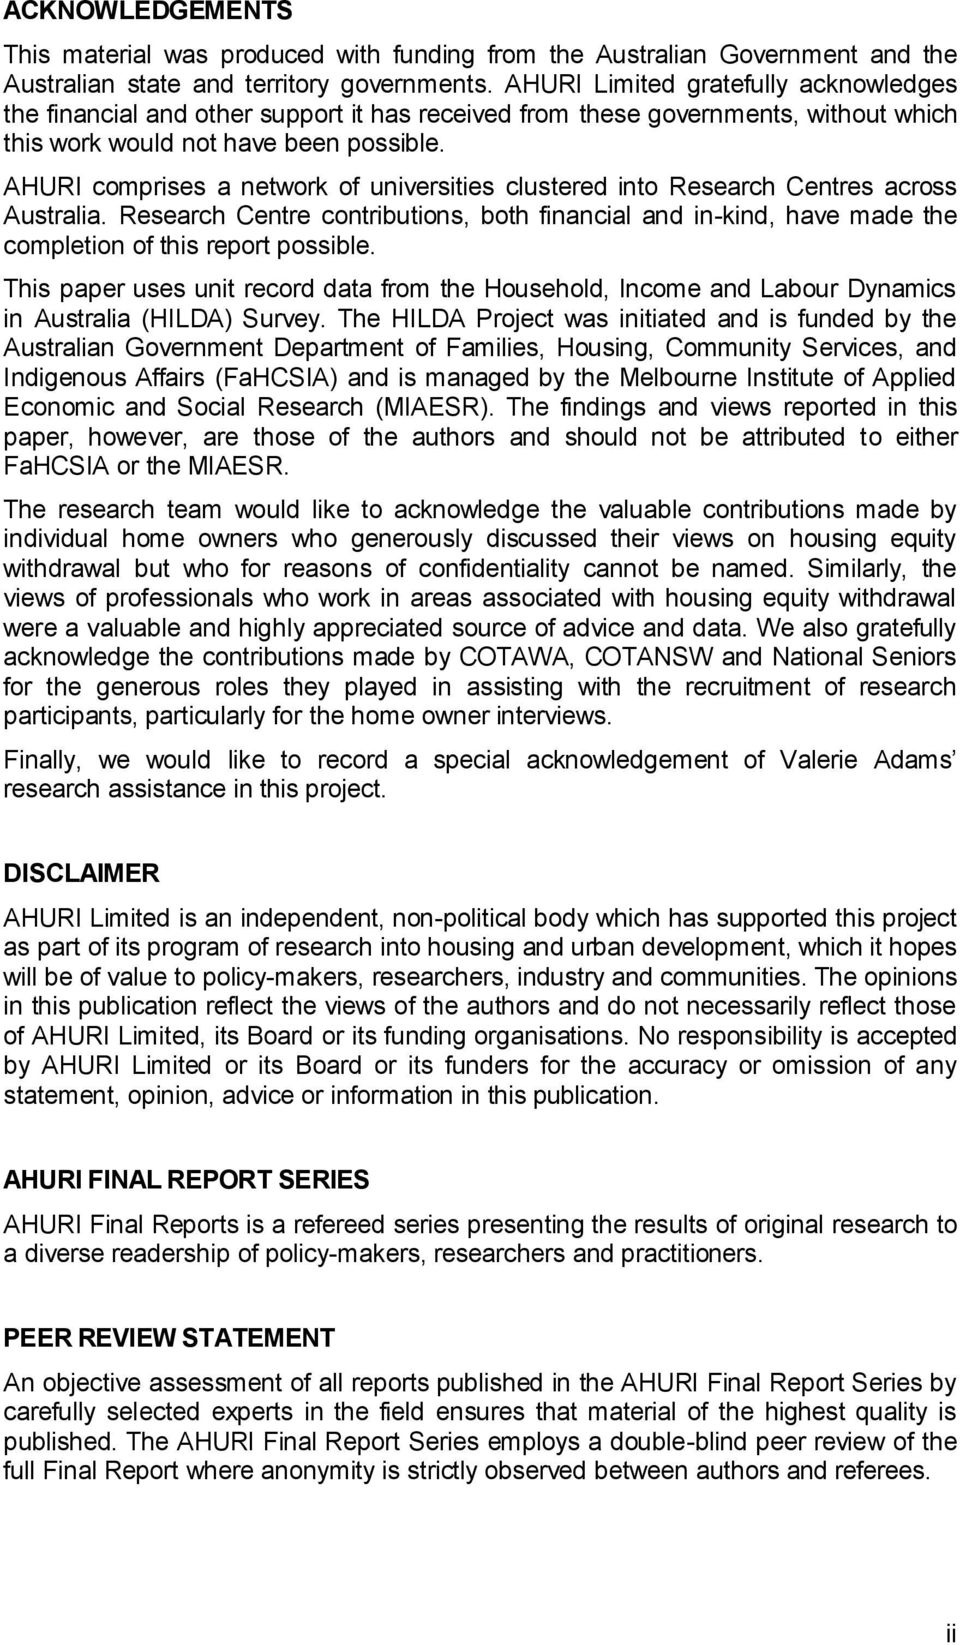 AHURI comprises a network of universities clustered into Research Centres across Australia. Research Centre contributions, both financial and in-kind, have made the completion of this report possible.